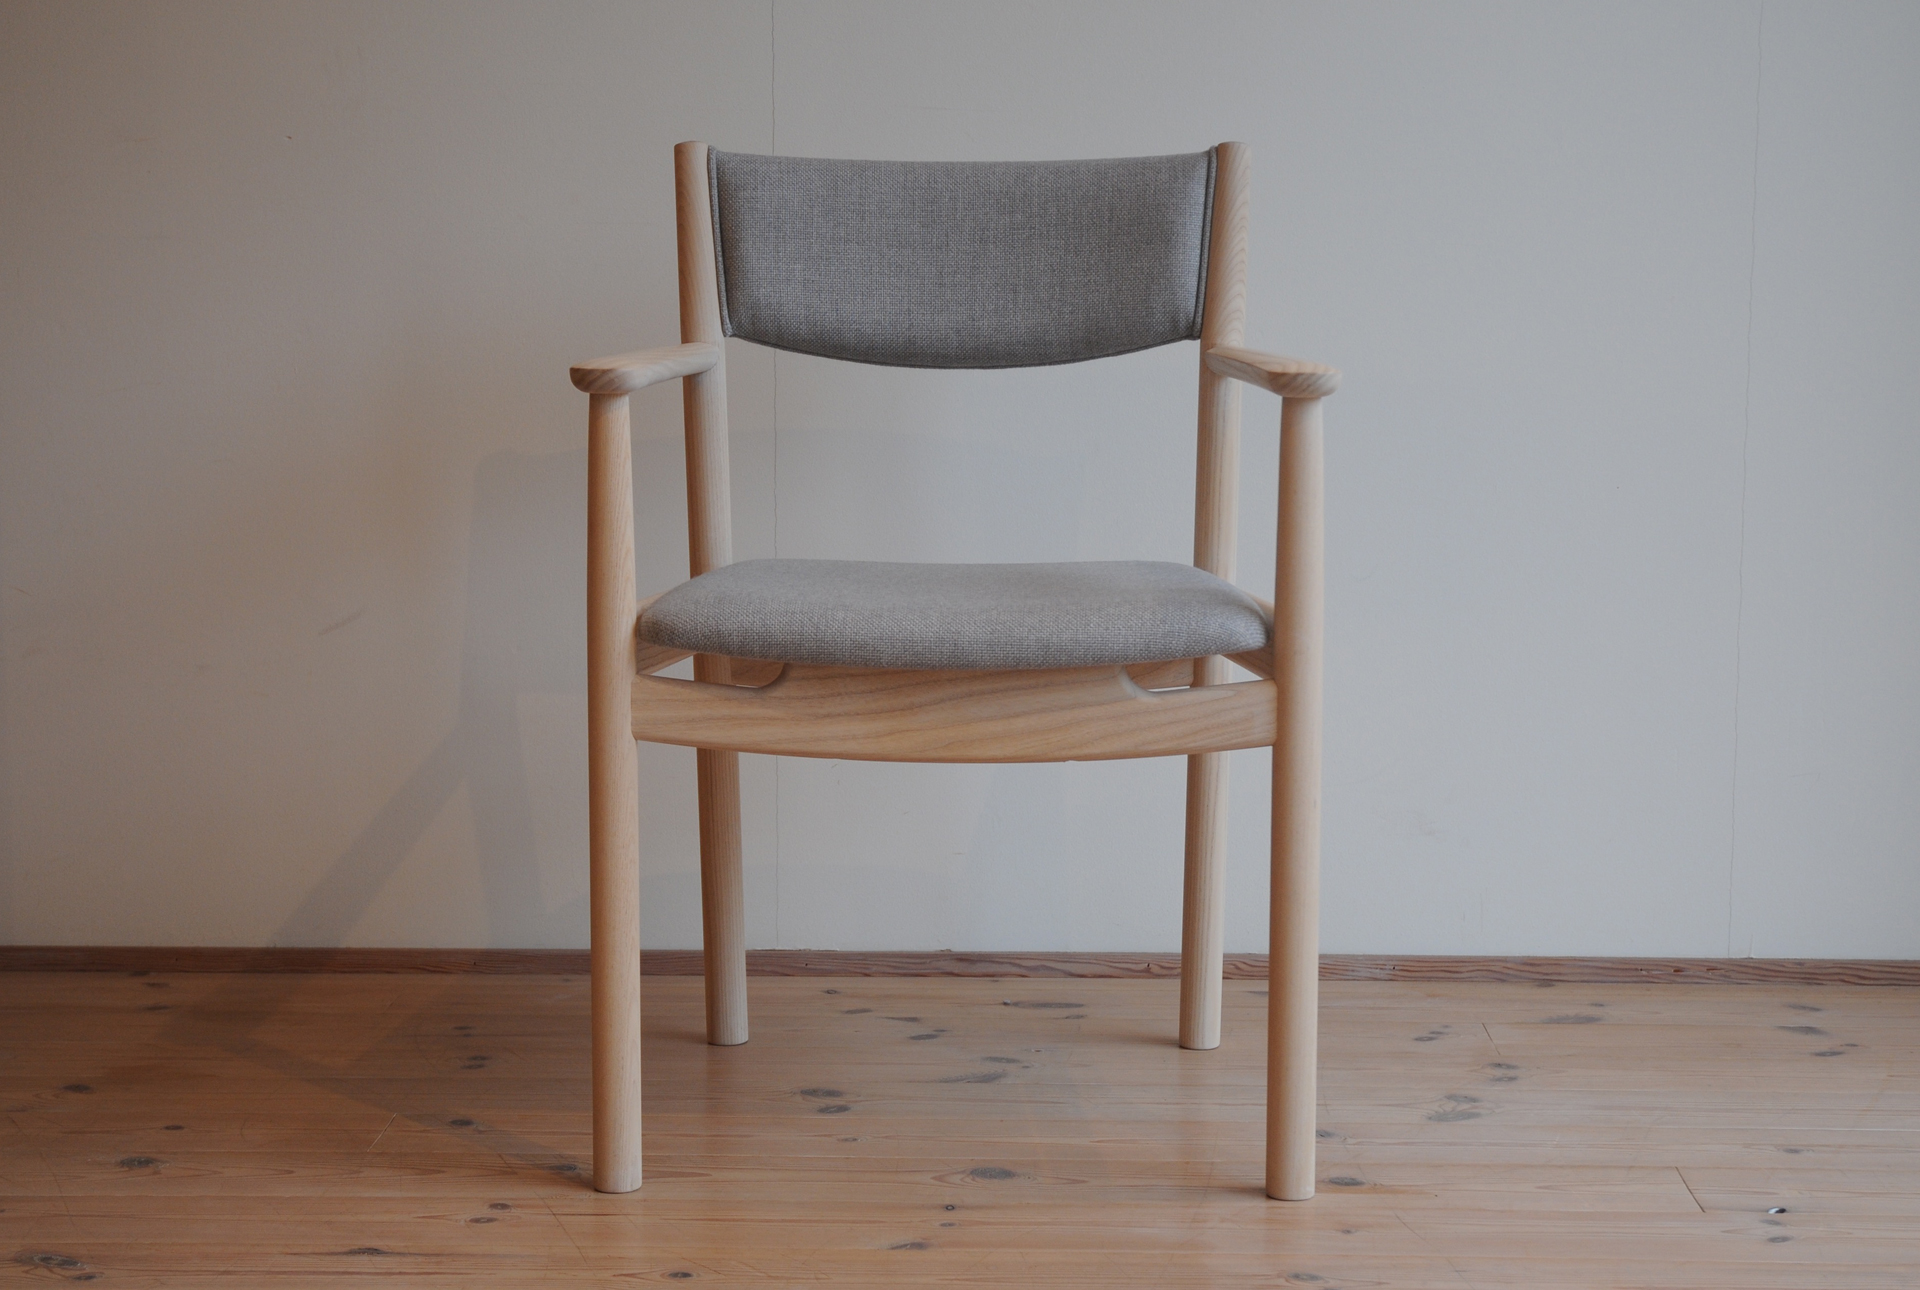 Japanese Chair 01